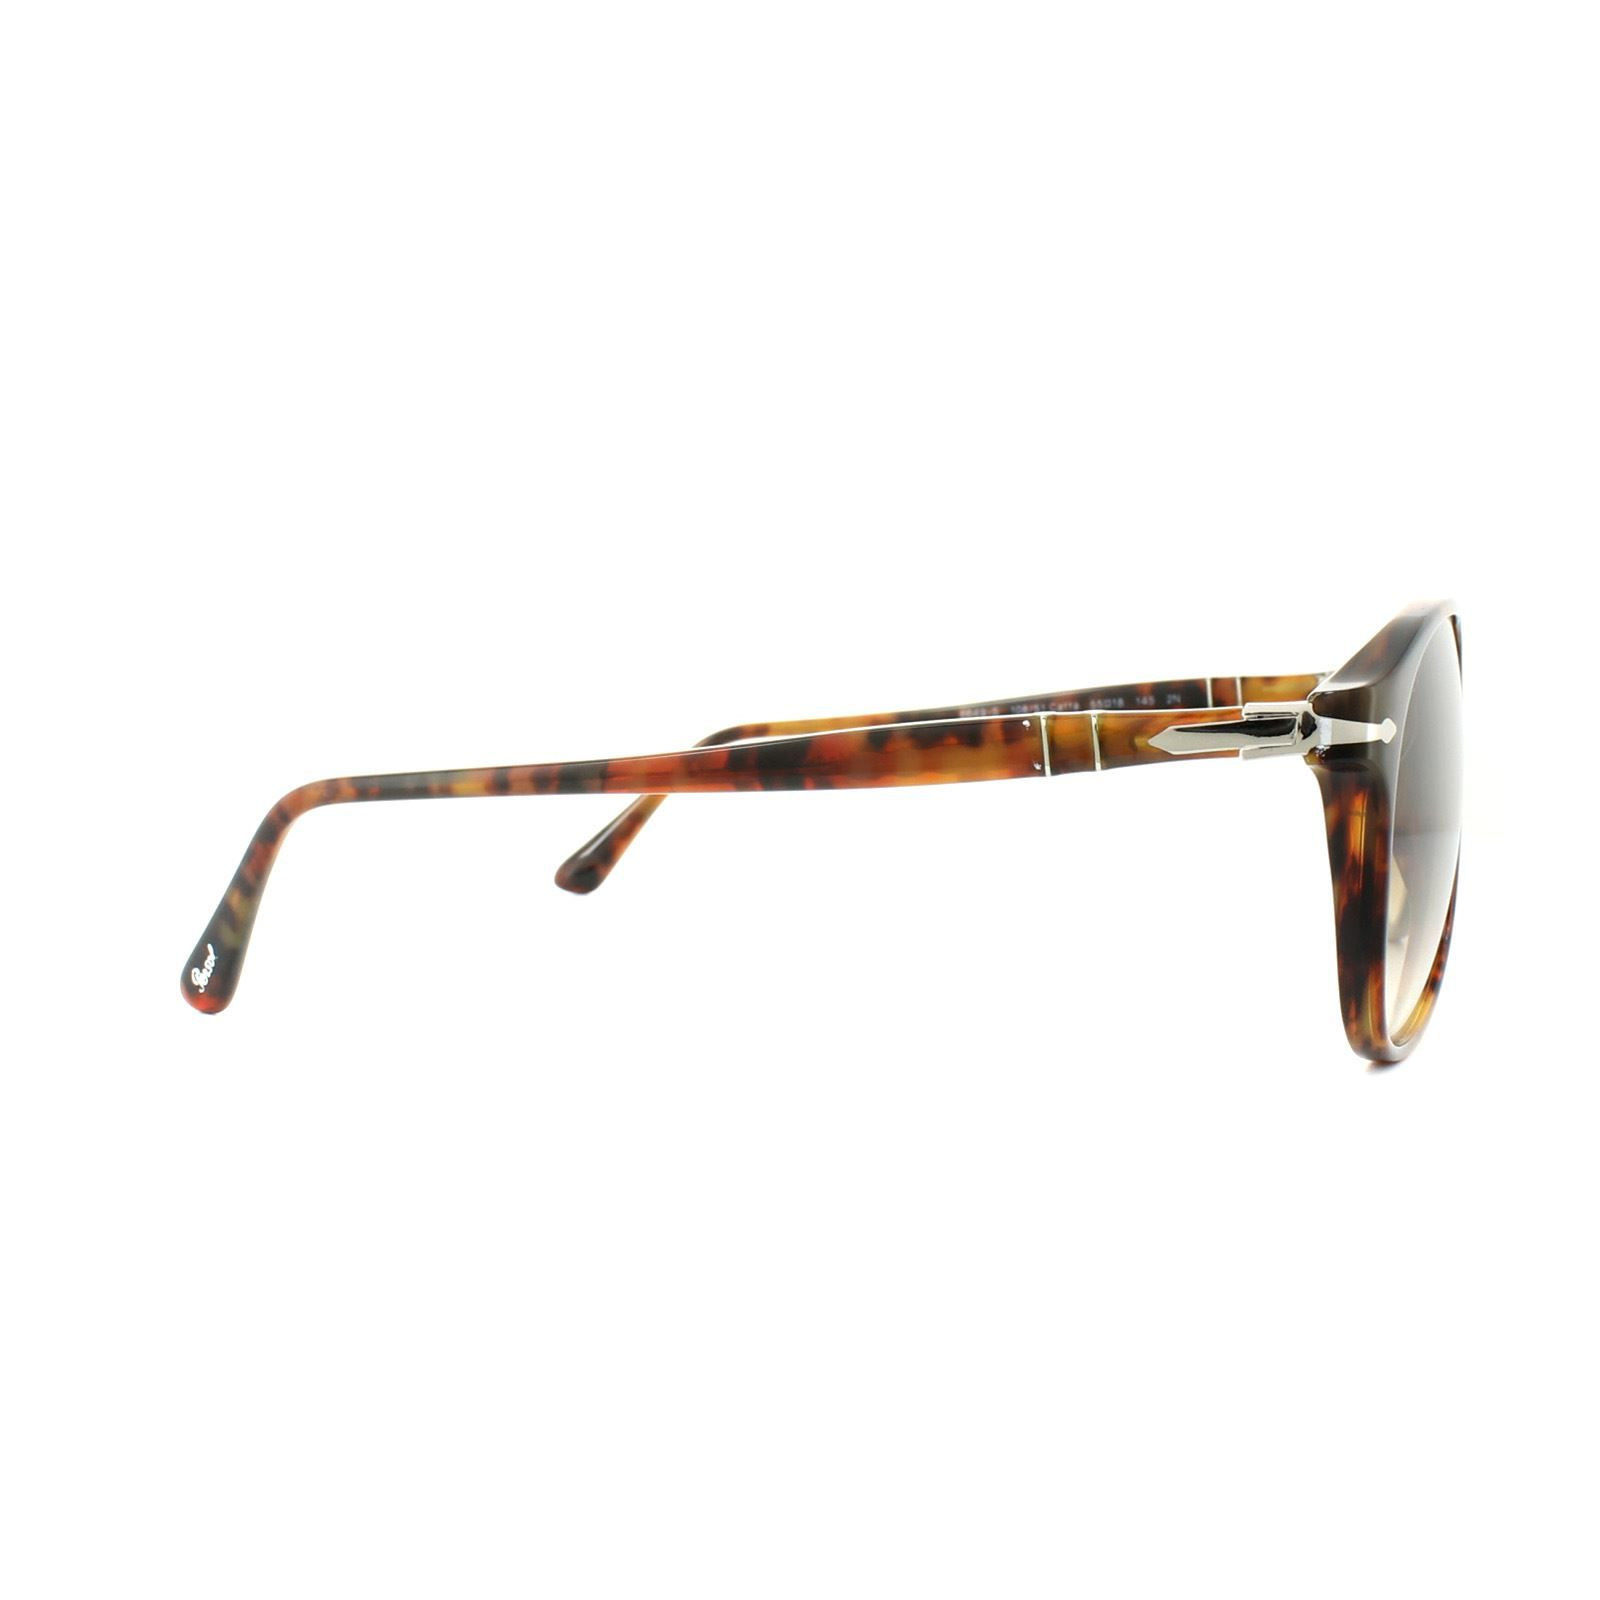 Persol Sunglasses 6649S 108/51 Caffe Brown Brown Gradient